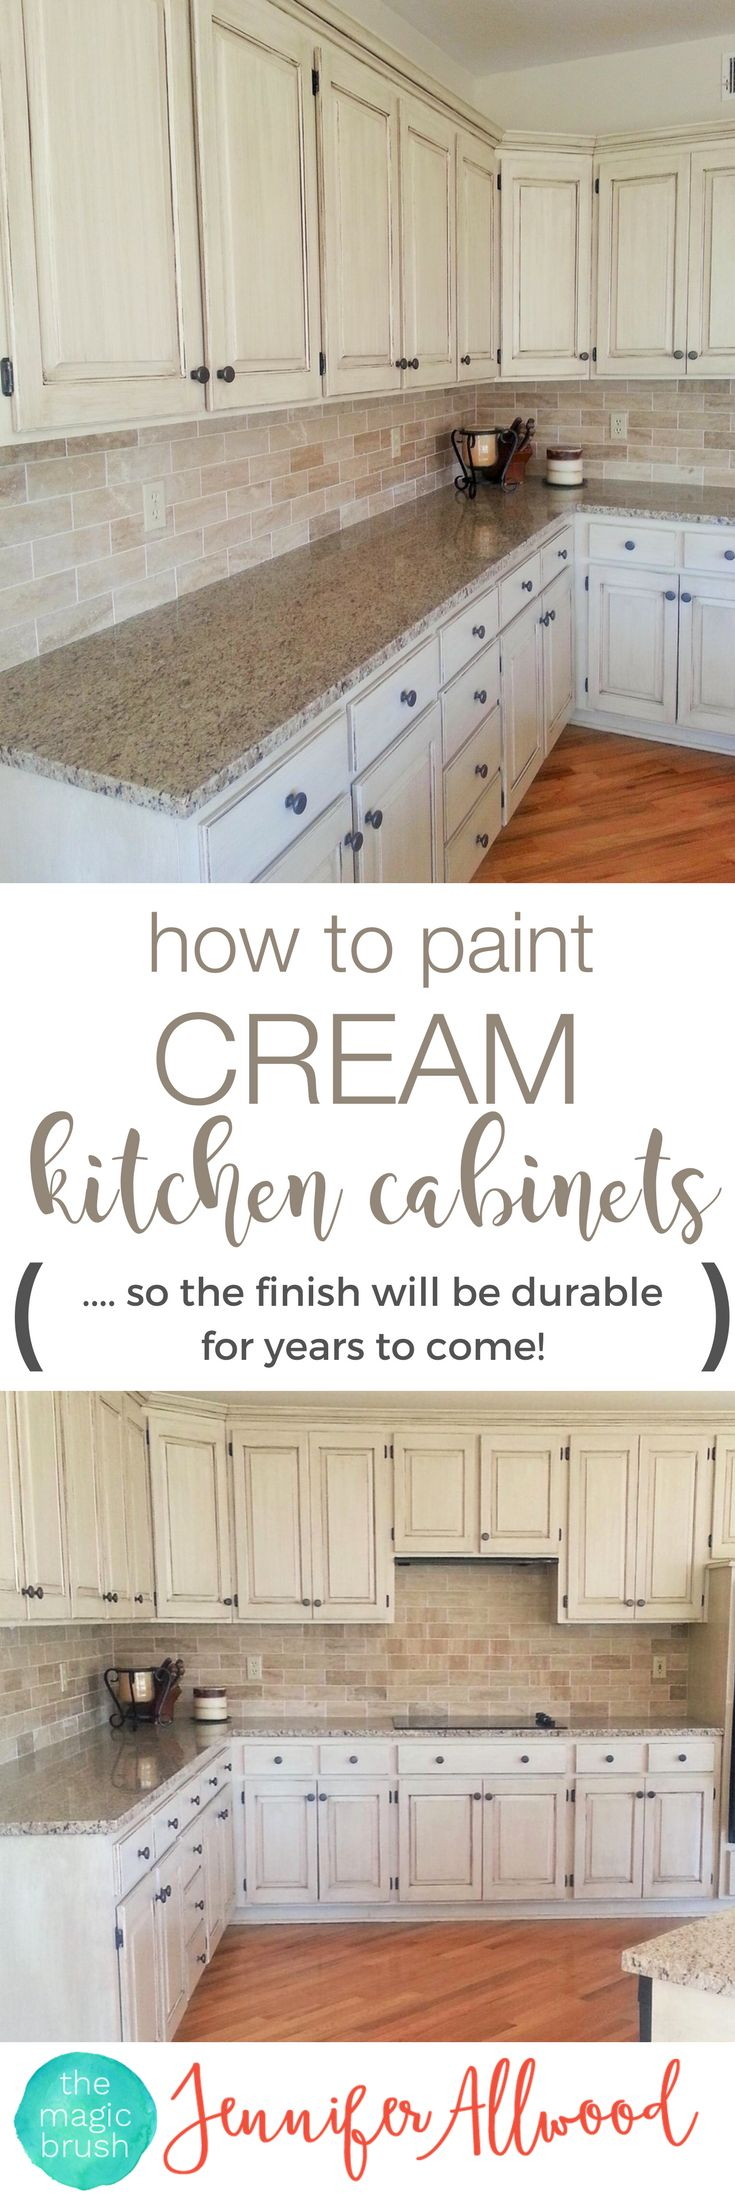 How to paint cream kitchen cabinets so the finish will be durable! Cabinet Painting Tips from theMagicBrushinc.com. Here's an easy DIY kitchen update with painted kitchen cabinets. Gorgeous Kitchen!